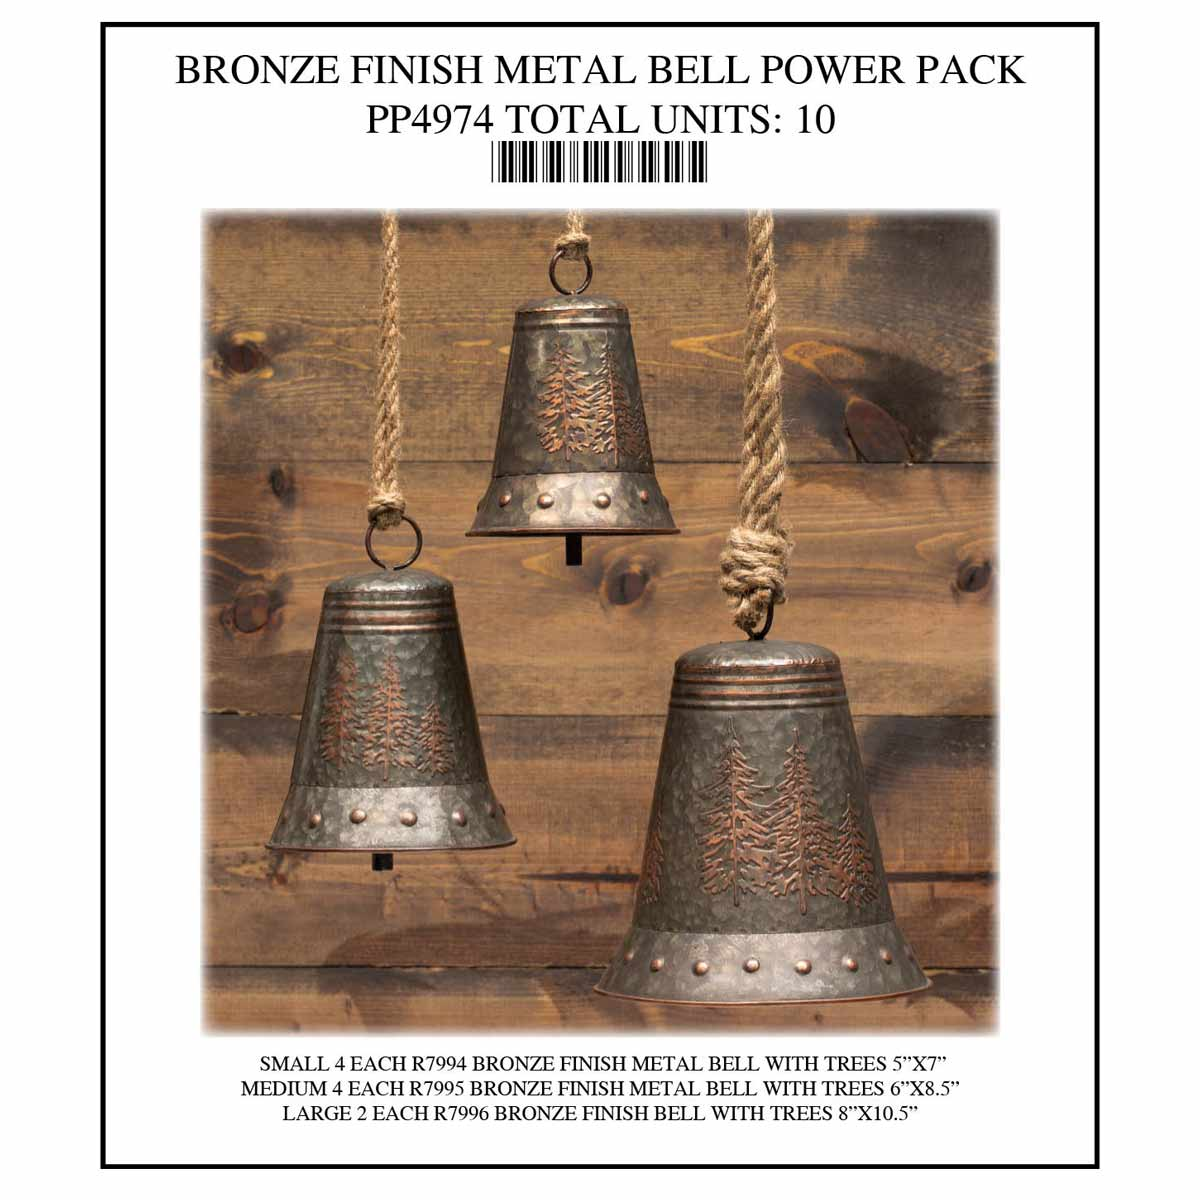 NORTHWOODS BRONZE BELL POWER PACK 10 UNITS PP4974